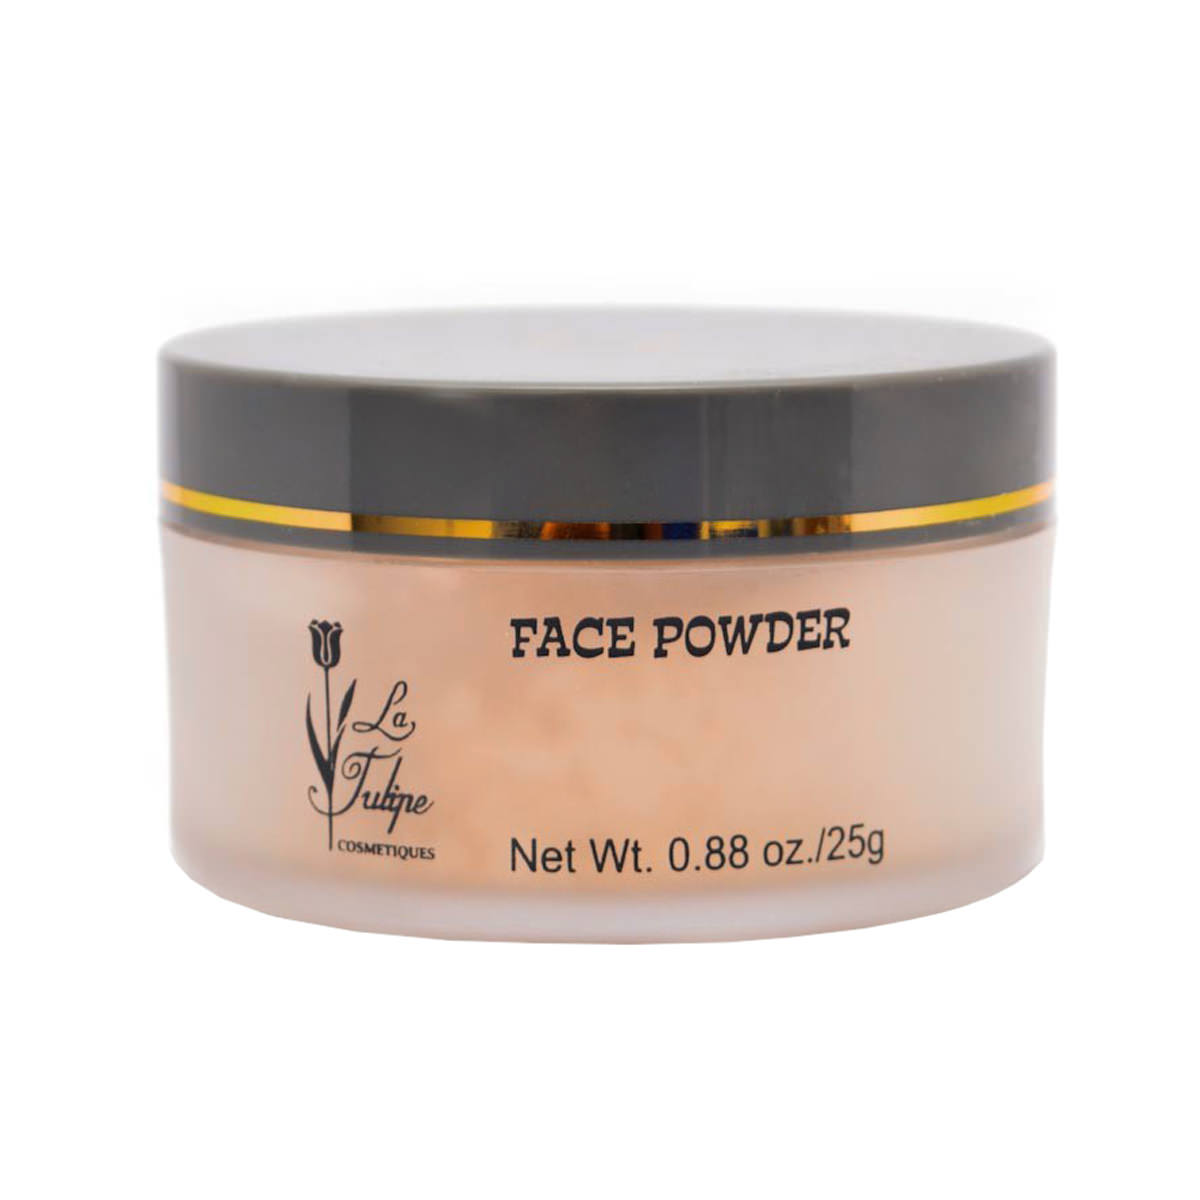 La-Tulipe-Face-Powder-Rose-Mauve-sfw (2)